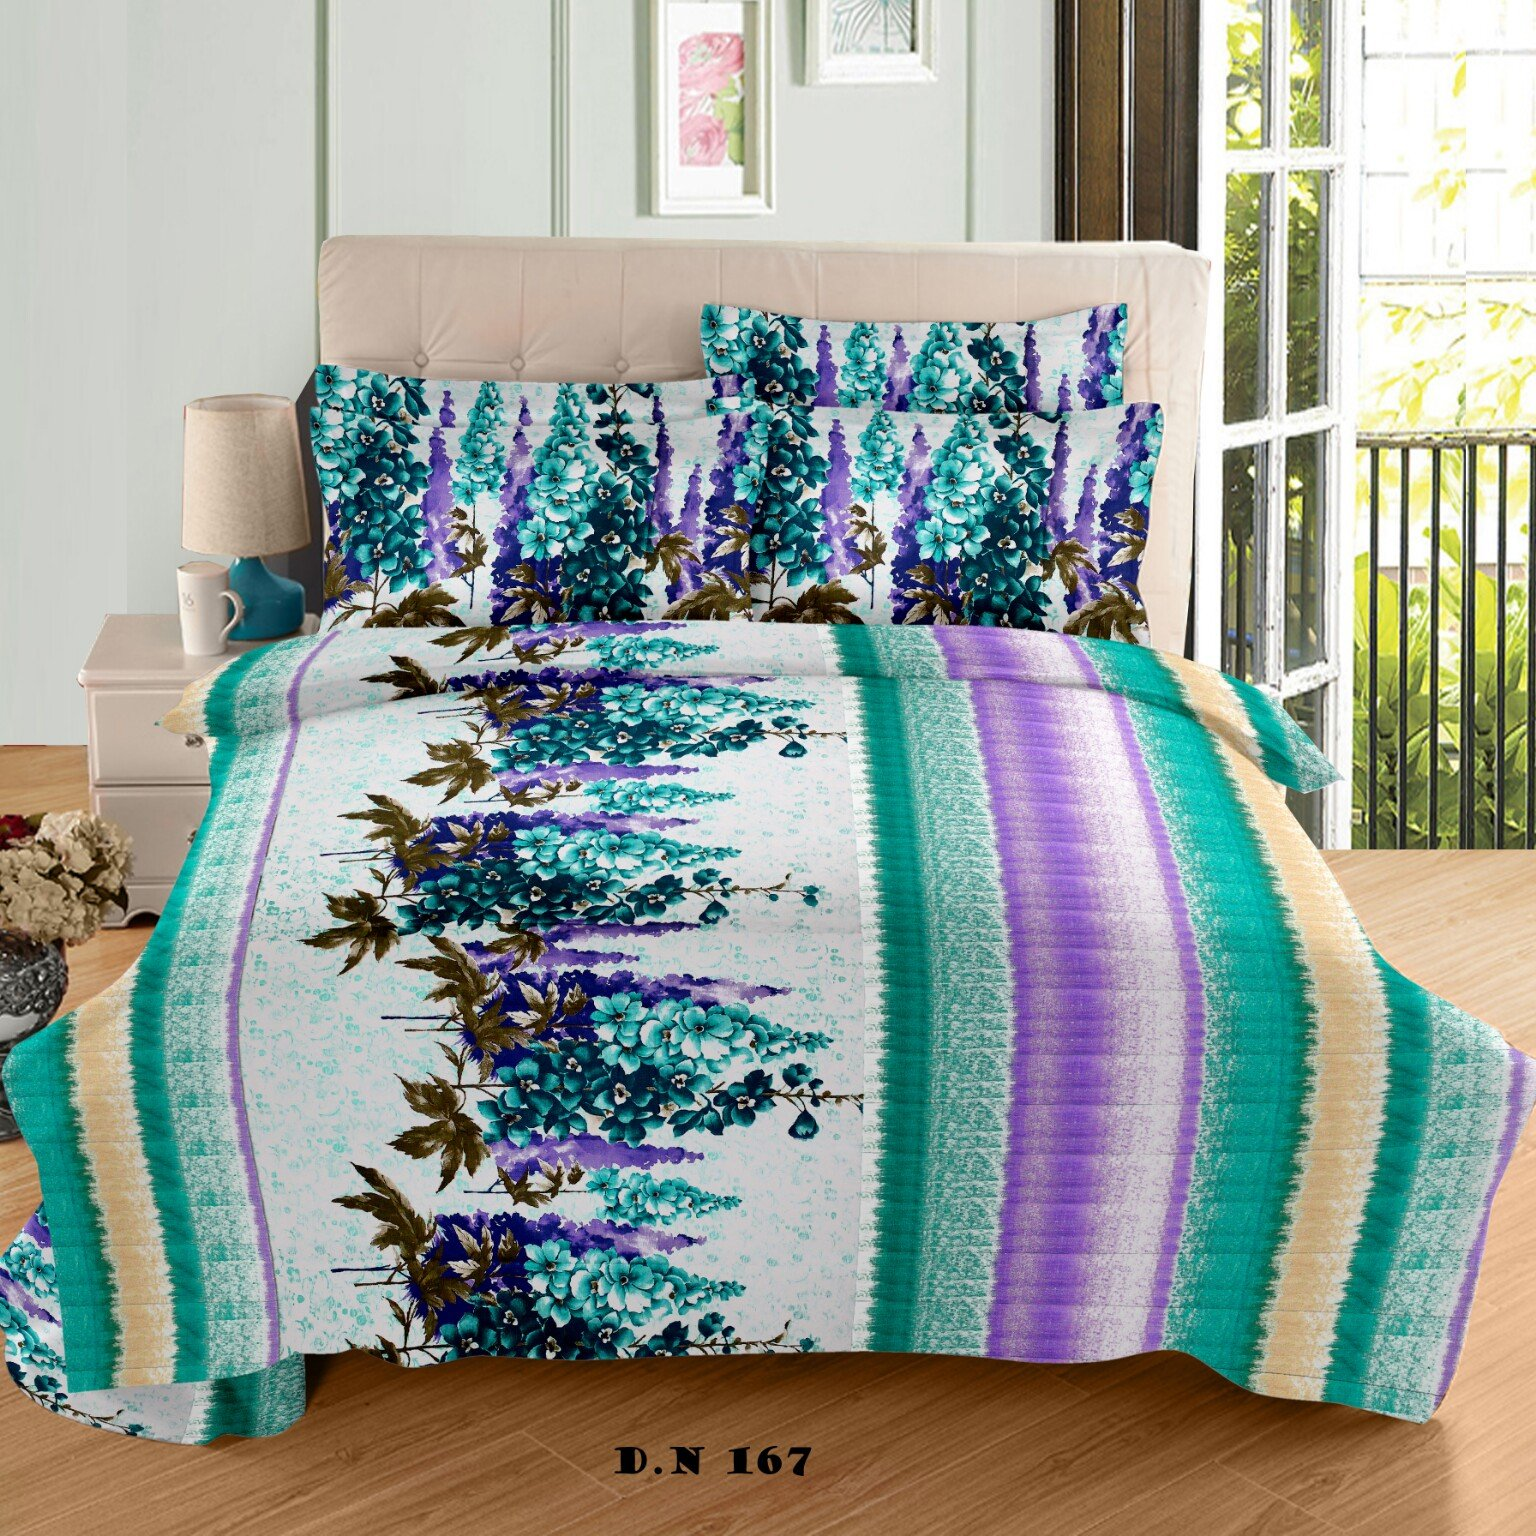 Style House 100% cotton luxury bedding, hotel collection, (double bed size) 100% Cottton - 90108 Inches